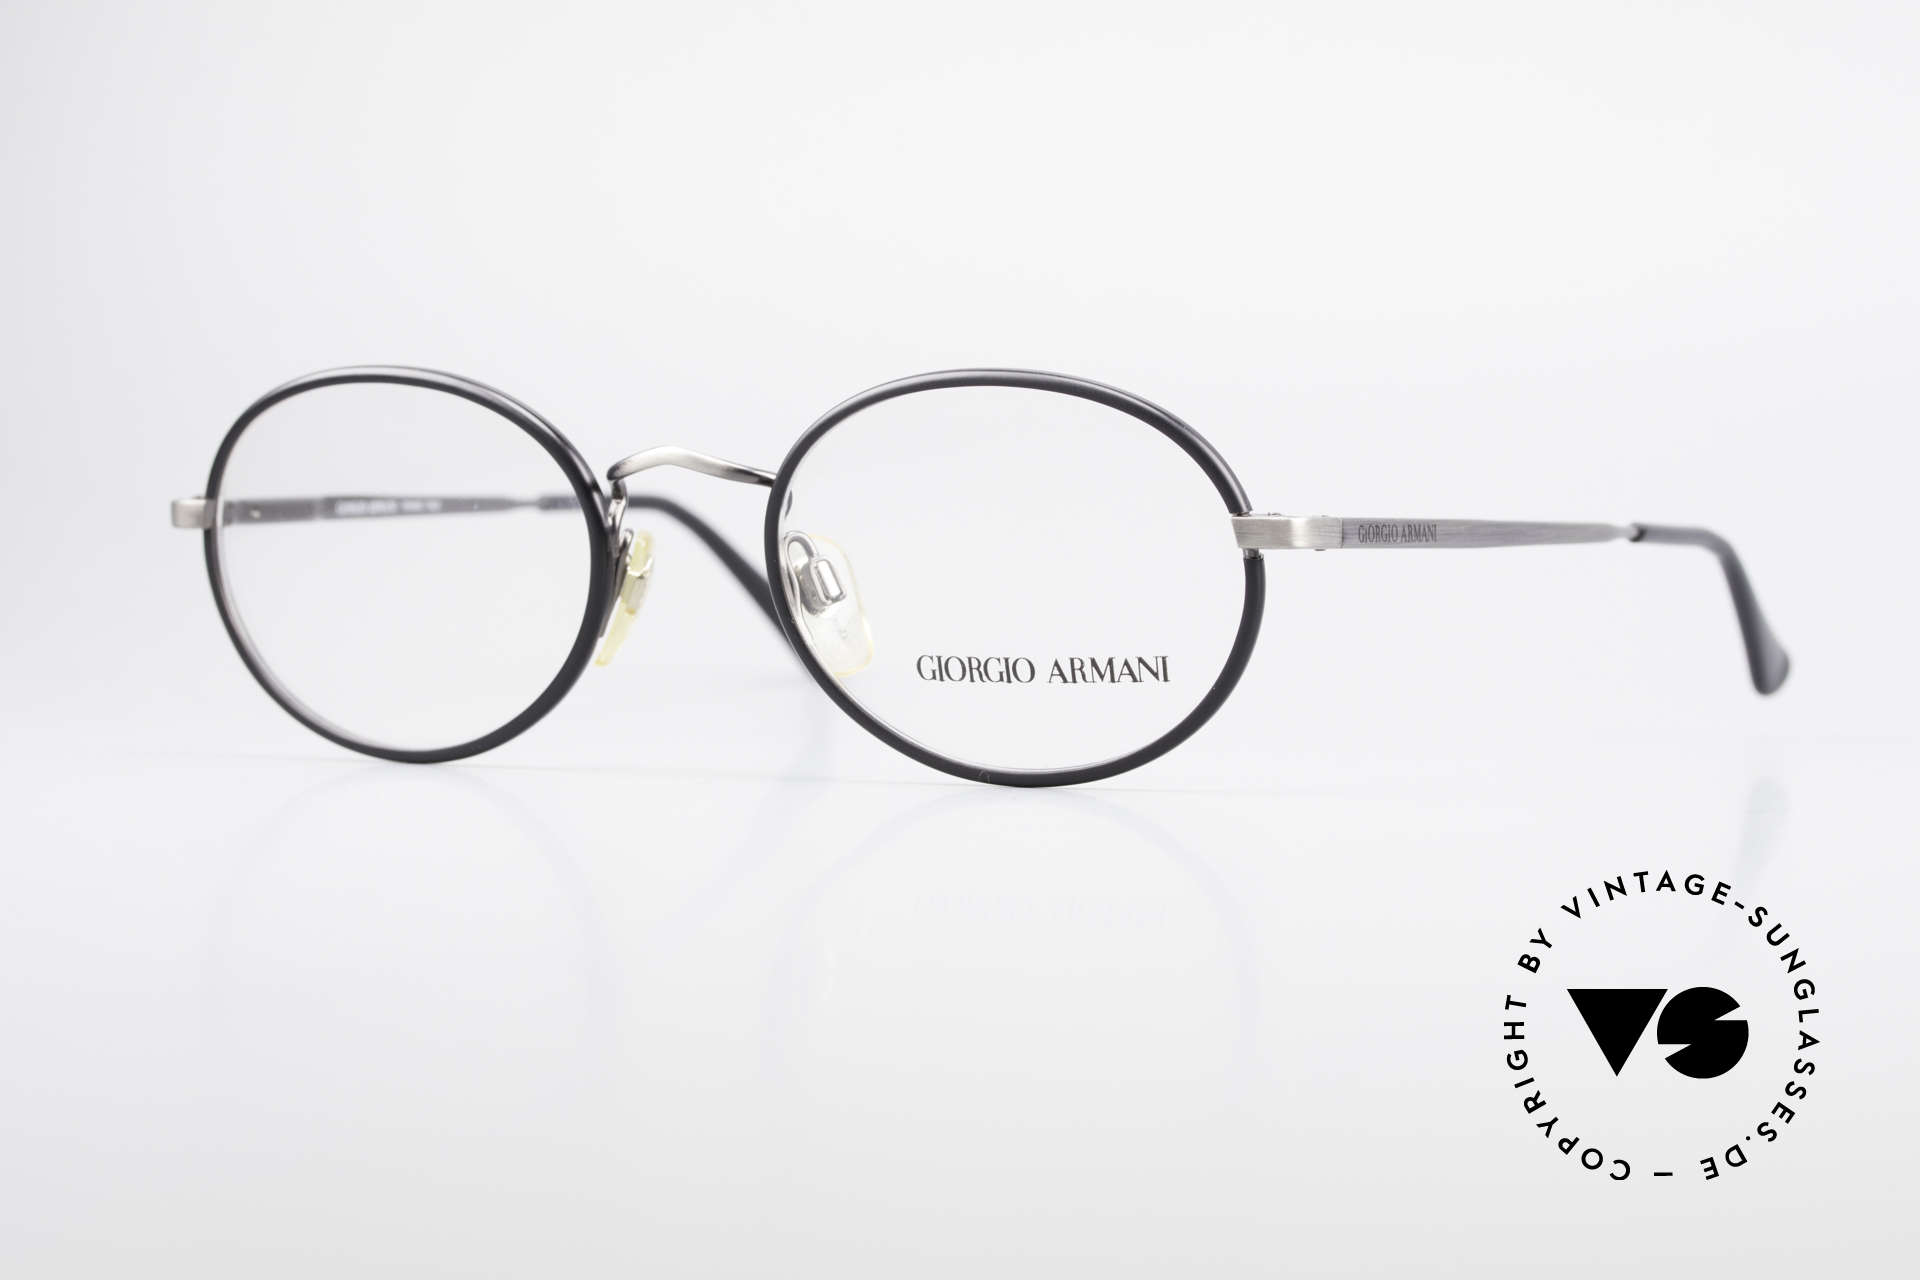 Giorgio Armani 235 Oval Vintage 80's Eyeglasses, vintage designer eyeglass-frame by GIORGIO Armani, Made for Men and Women